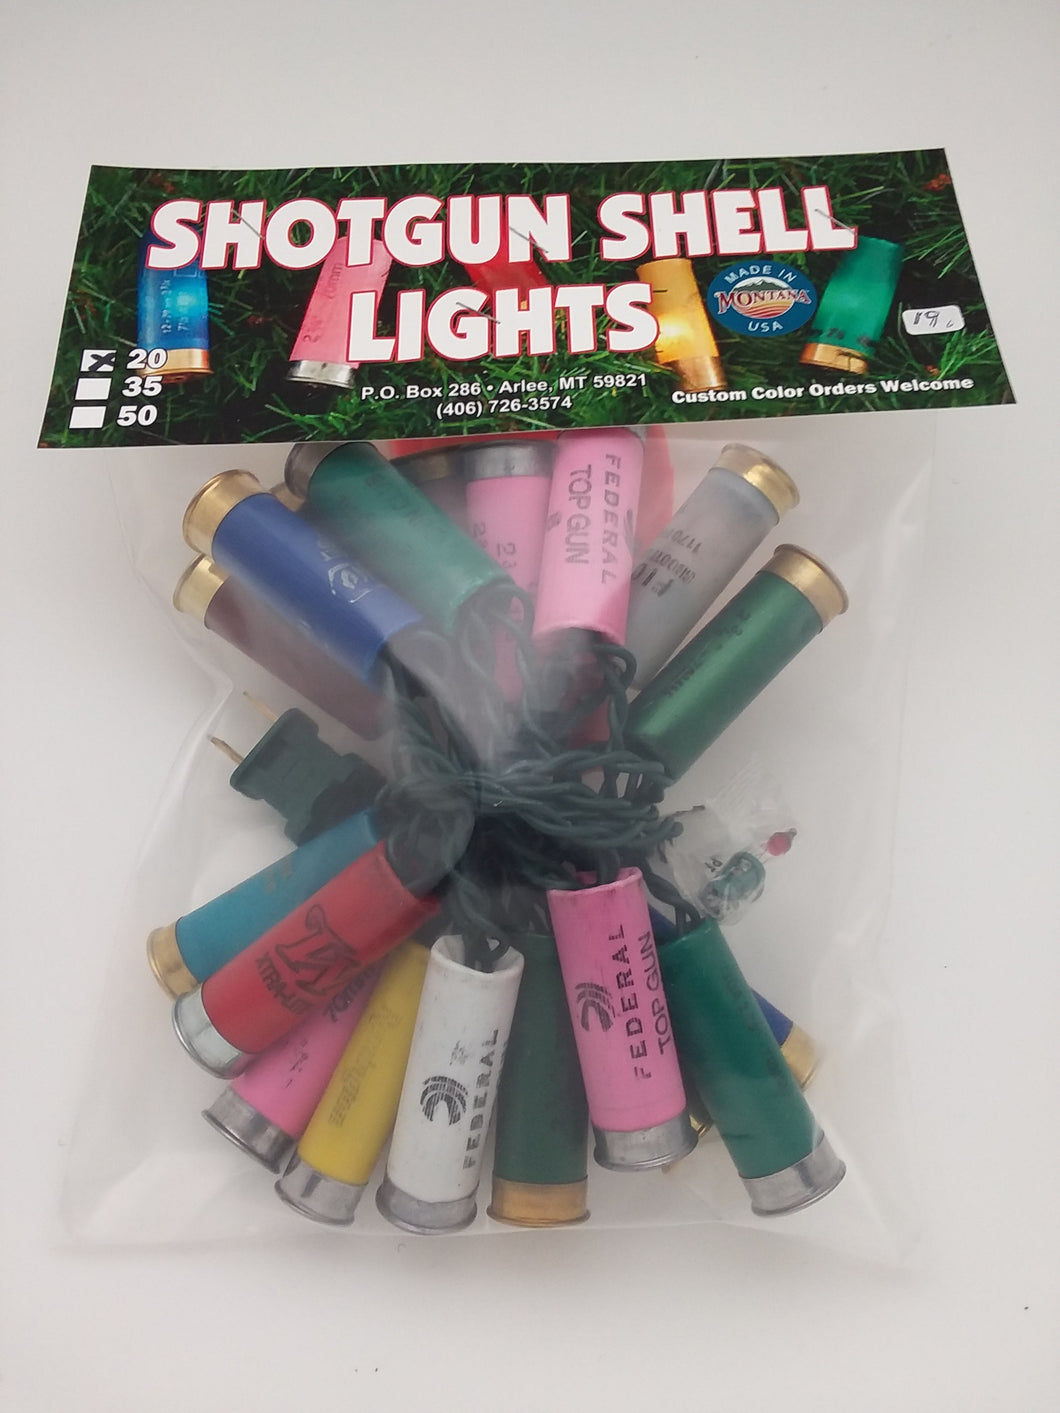 Shotgun Shell Lights 20 count